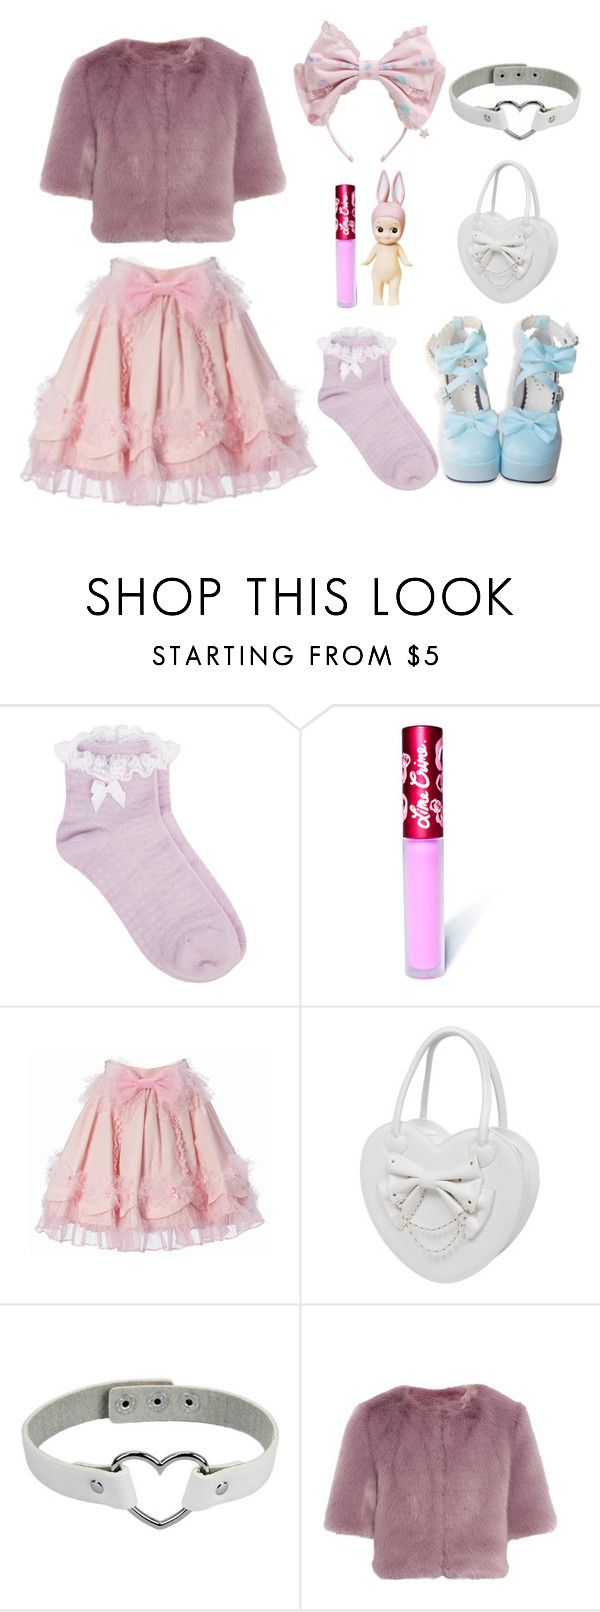 """❤Melanie Martinez // Carousel Inspired Outfit❤"" by cheryl11132 ❤ liked on Polyvore featuring Oasis, Lime Crime, Shrimps, melaniemartinez and Crybaby"